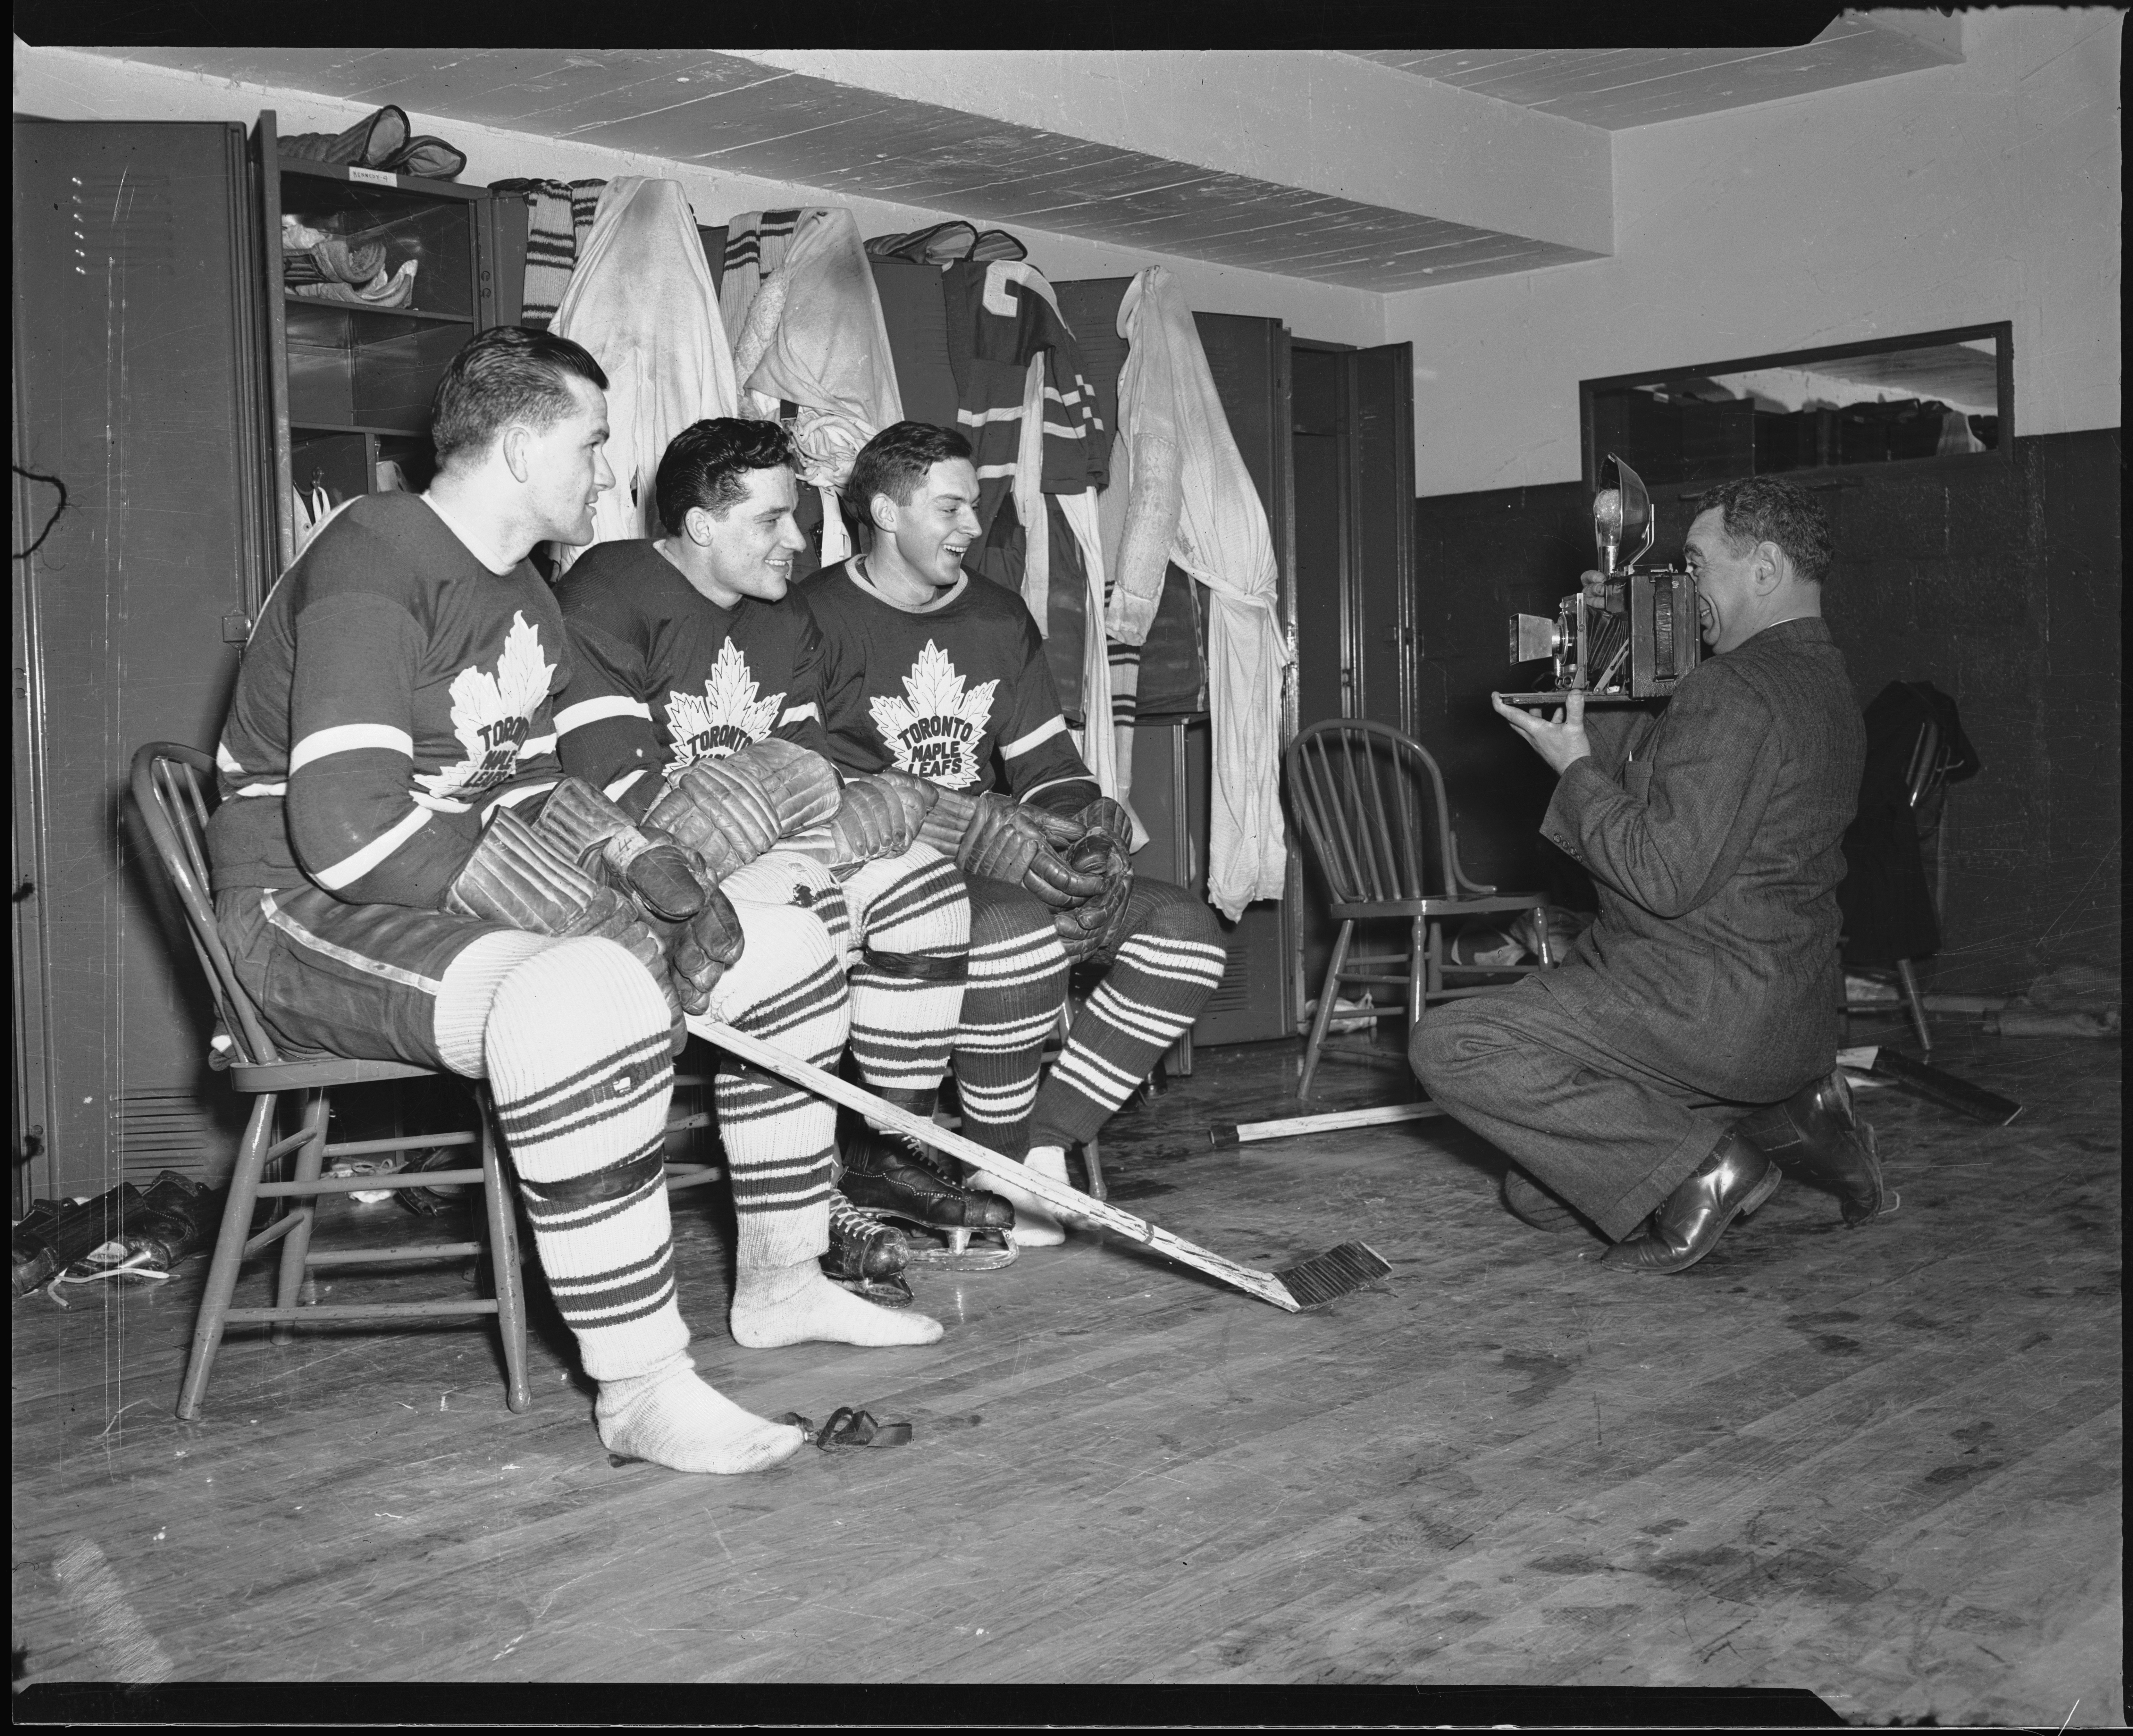 Still Leaf: Photographer Nat Turofsky lines up Leafs (left to right) Syl Apps, Bill Ezinicki, and John McCormack in the dressing room at Maple Leaf Gardens during the 1947-48 season. (Photo: Toronto Archives, fonds 1257, series 1057, item 9516, Alexandra Studio fonds)